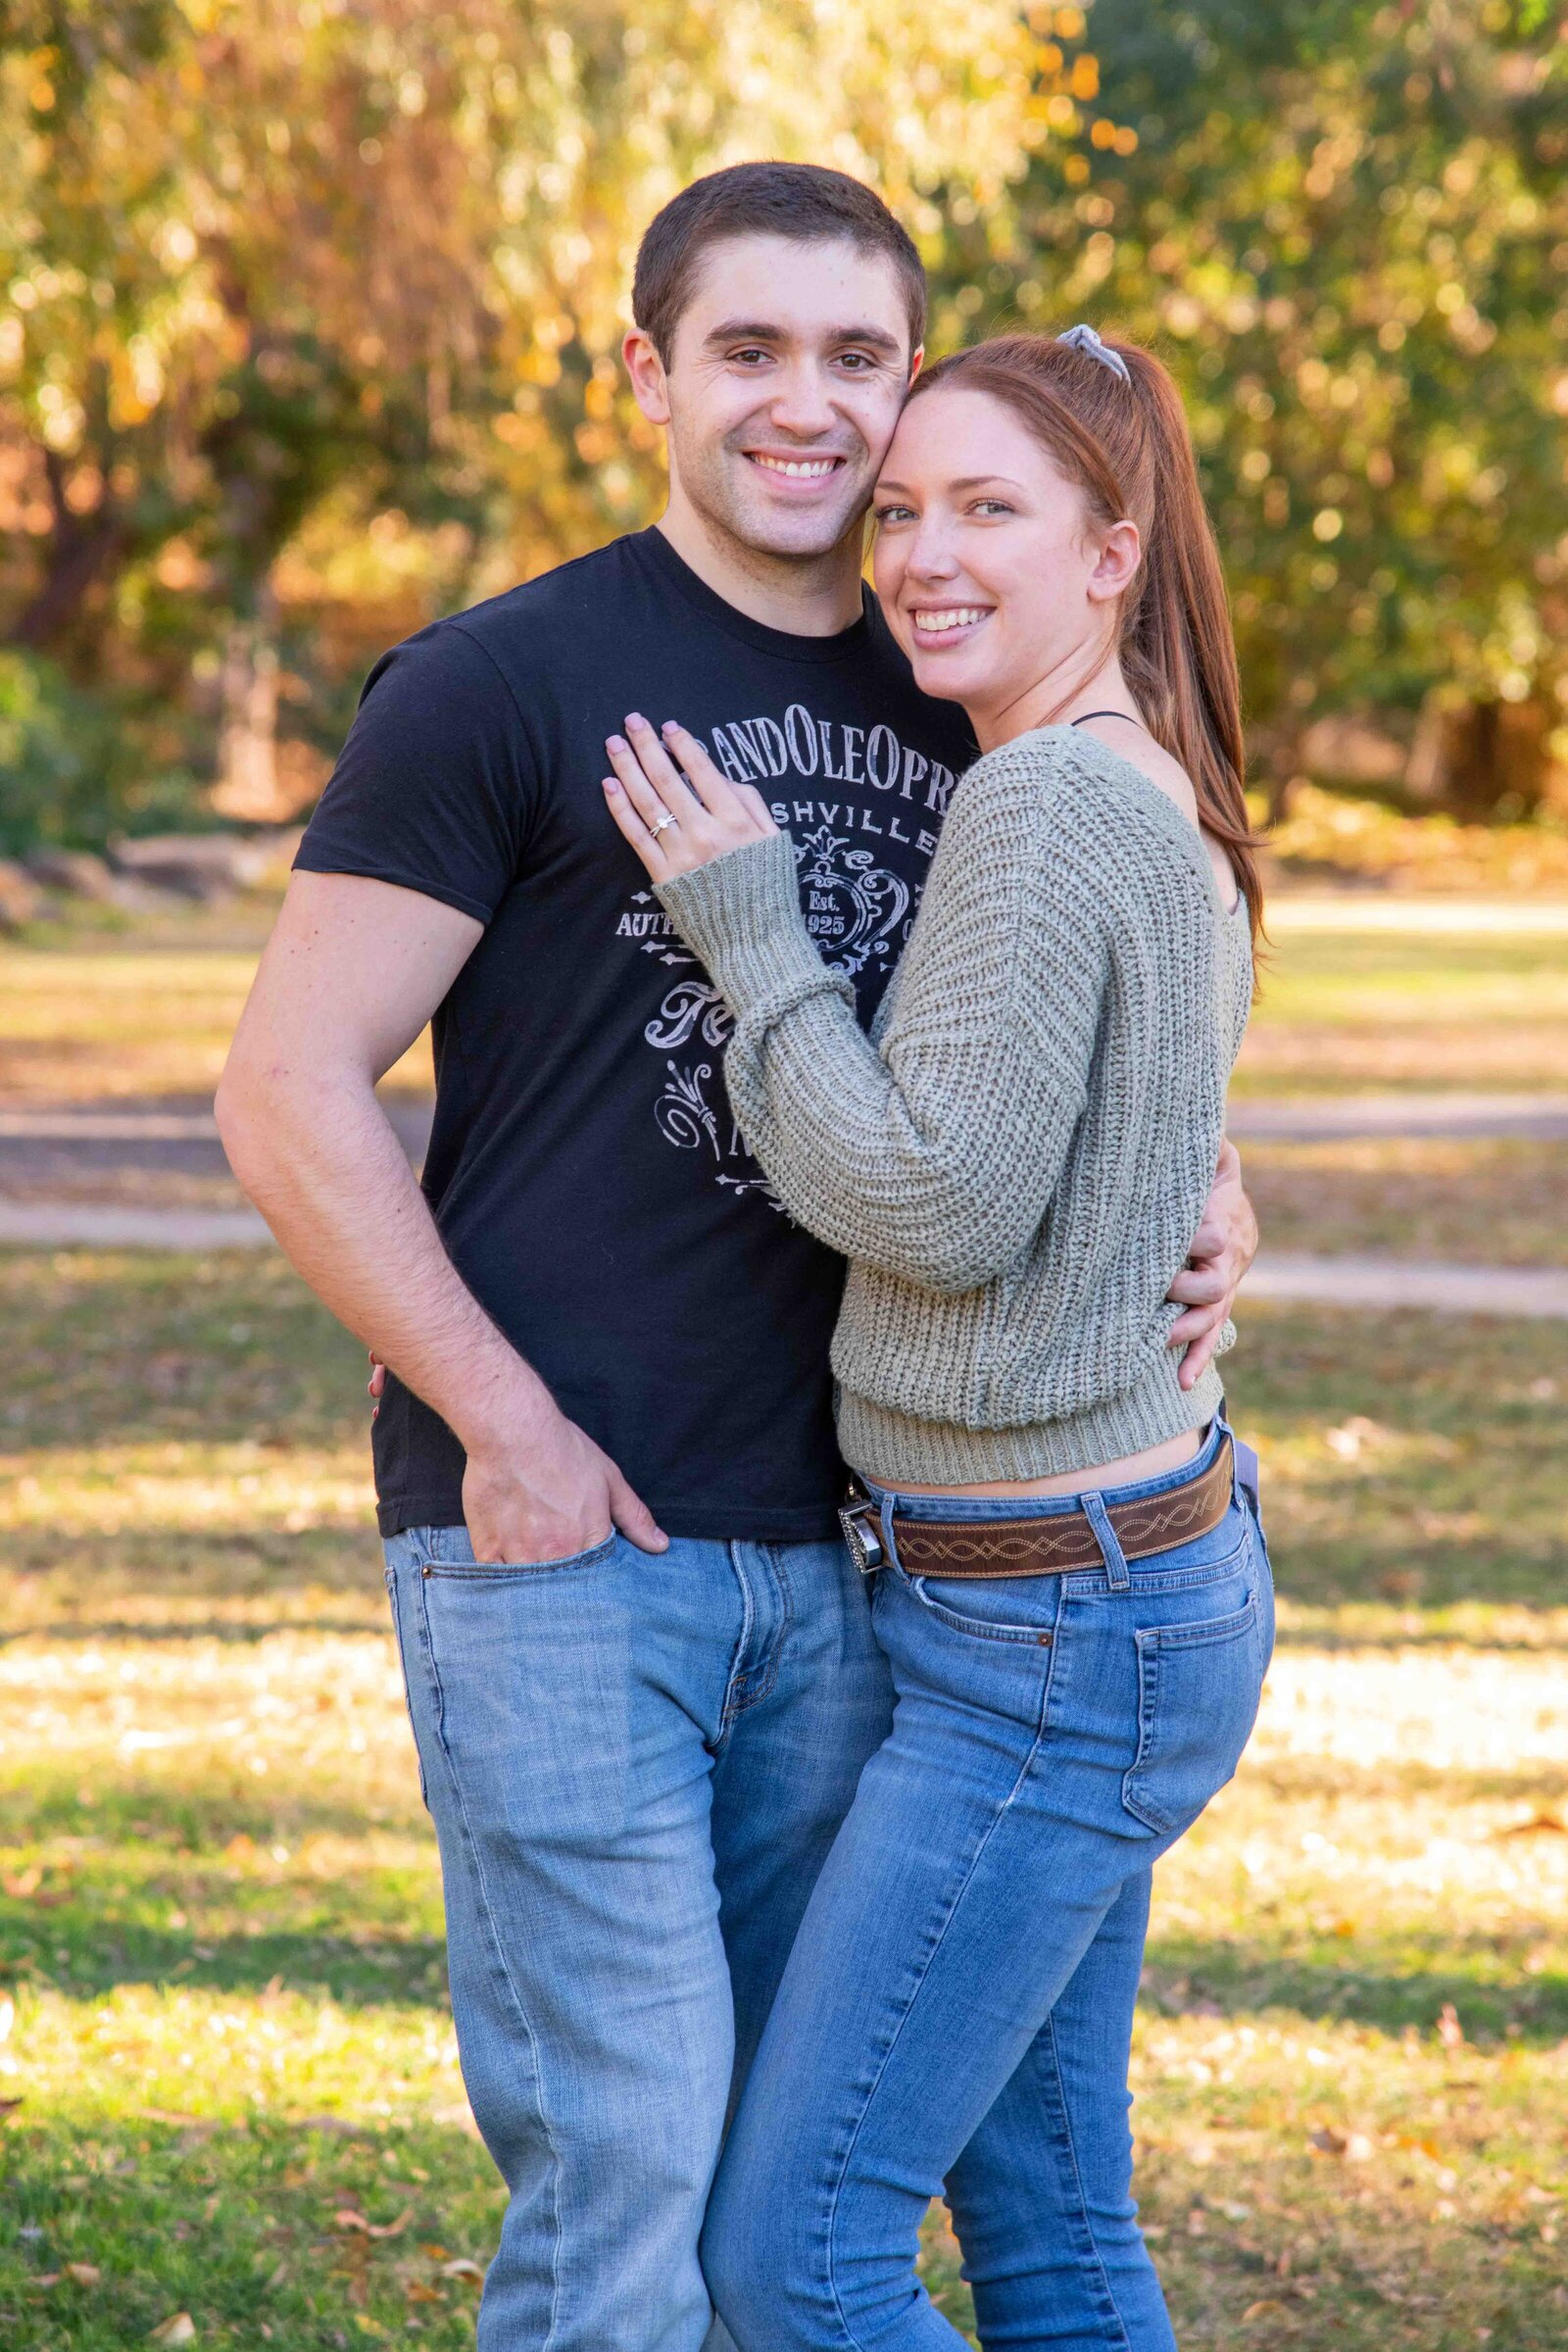 Maria-McCarthy-Photography-engagement-casual